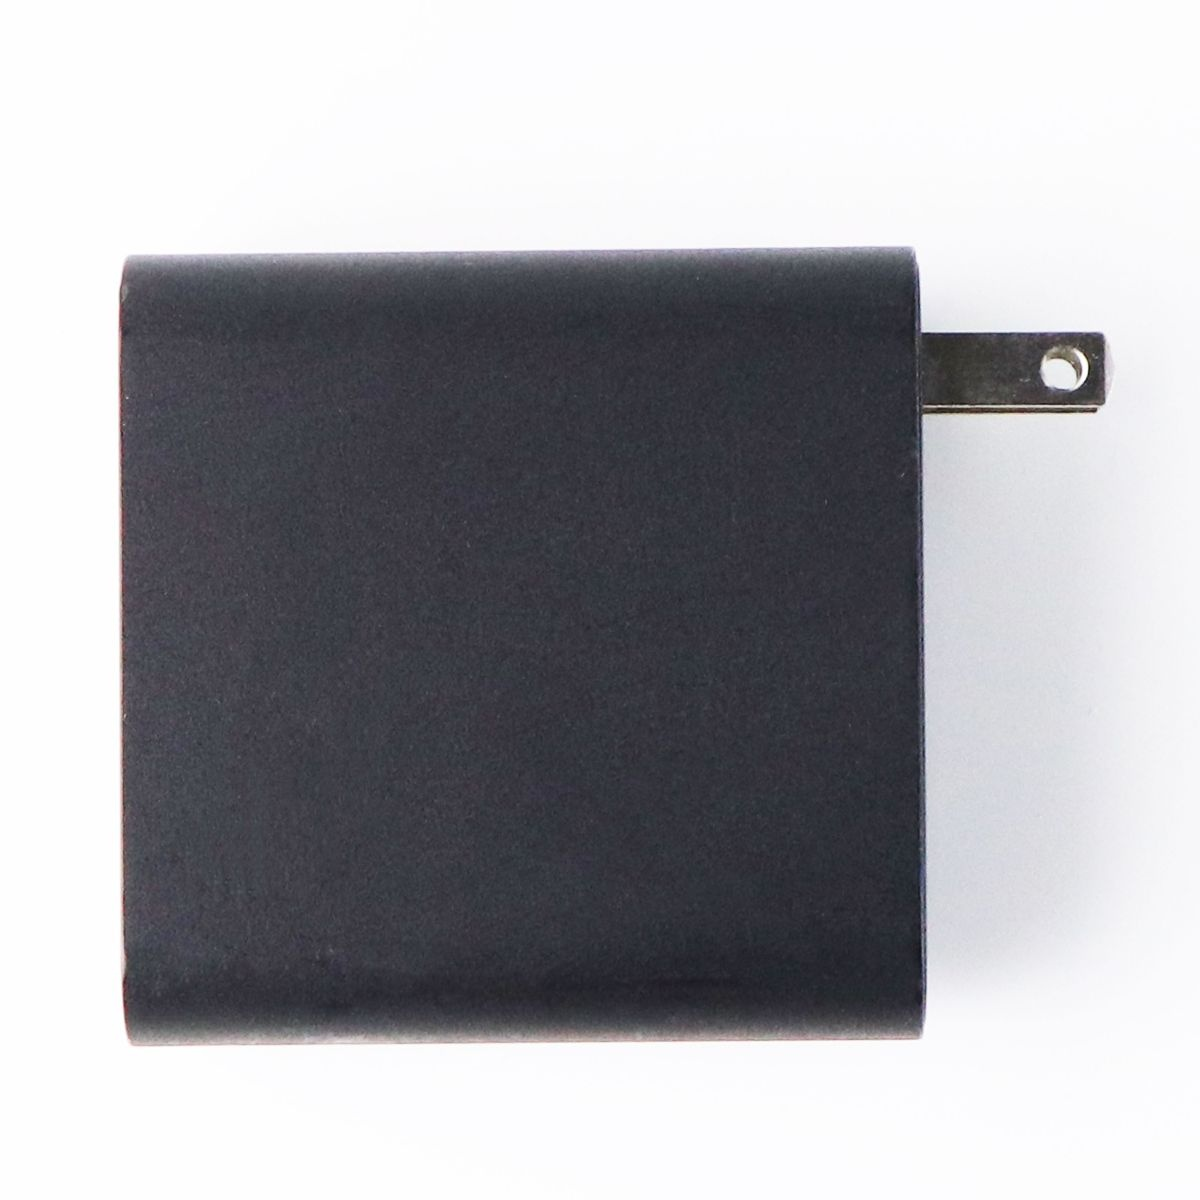 OEM Genuine Replacement Tablet Charger Power Adapter LITEON (PA-1100-25)